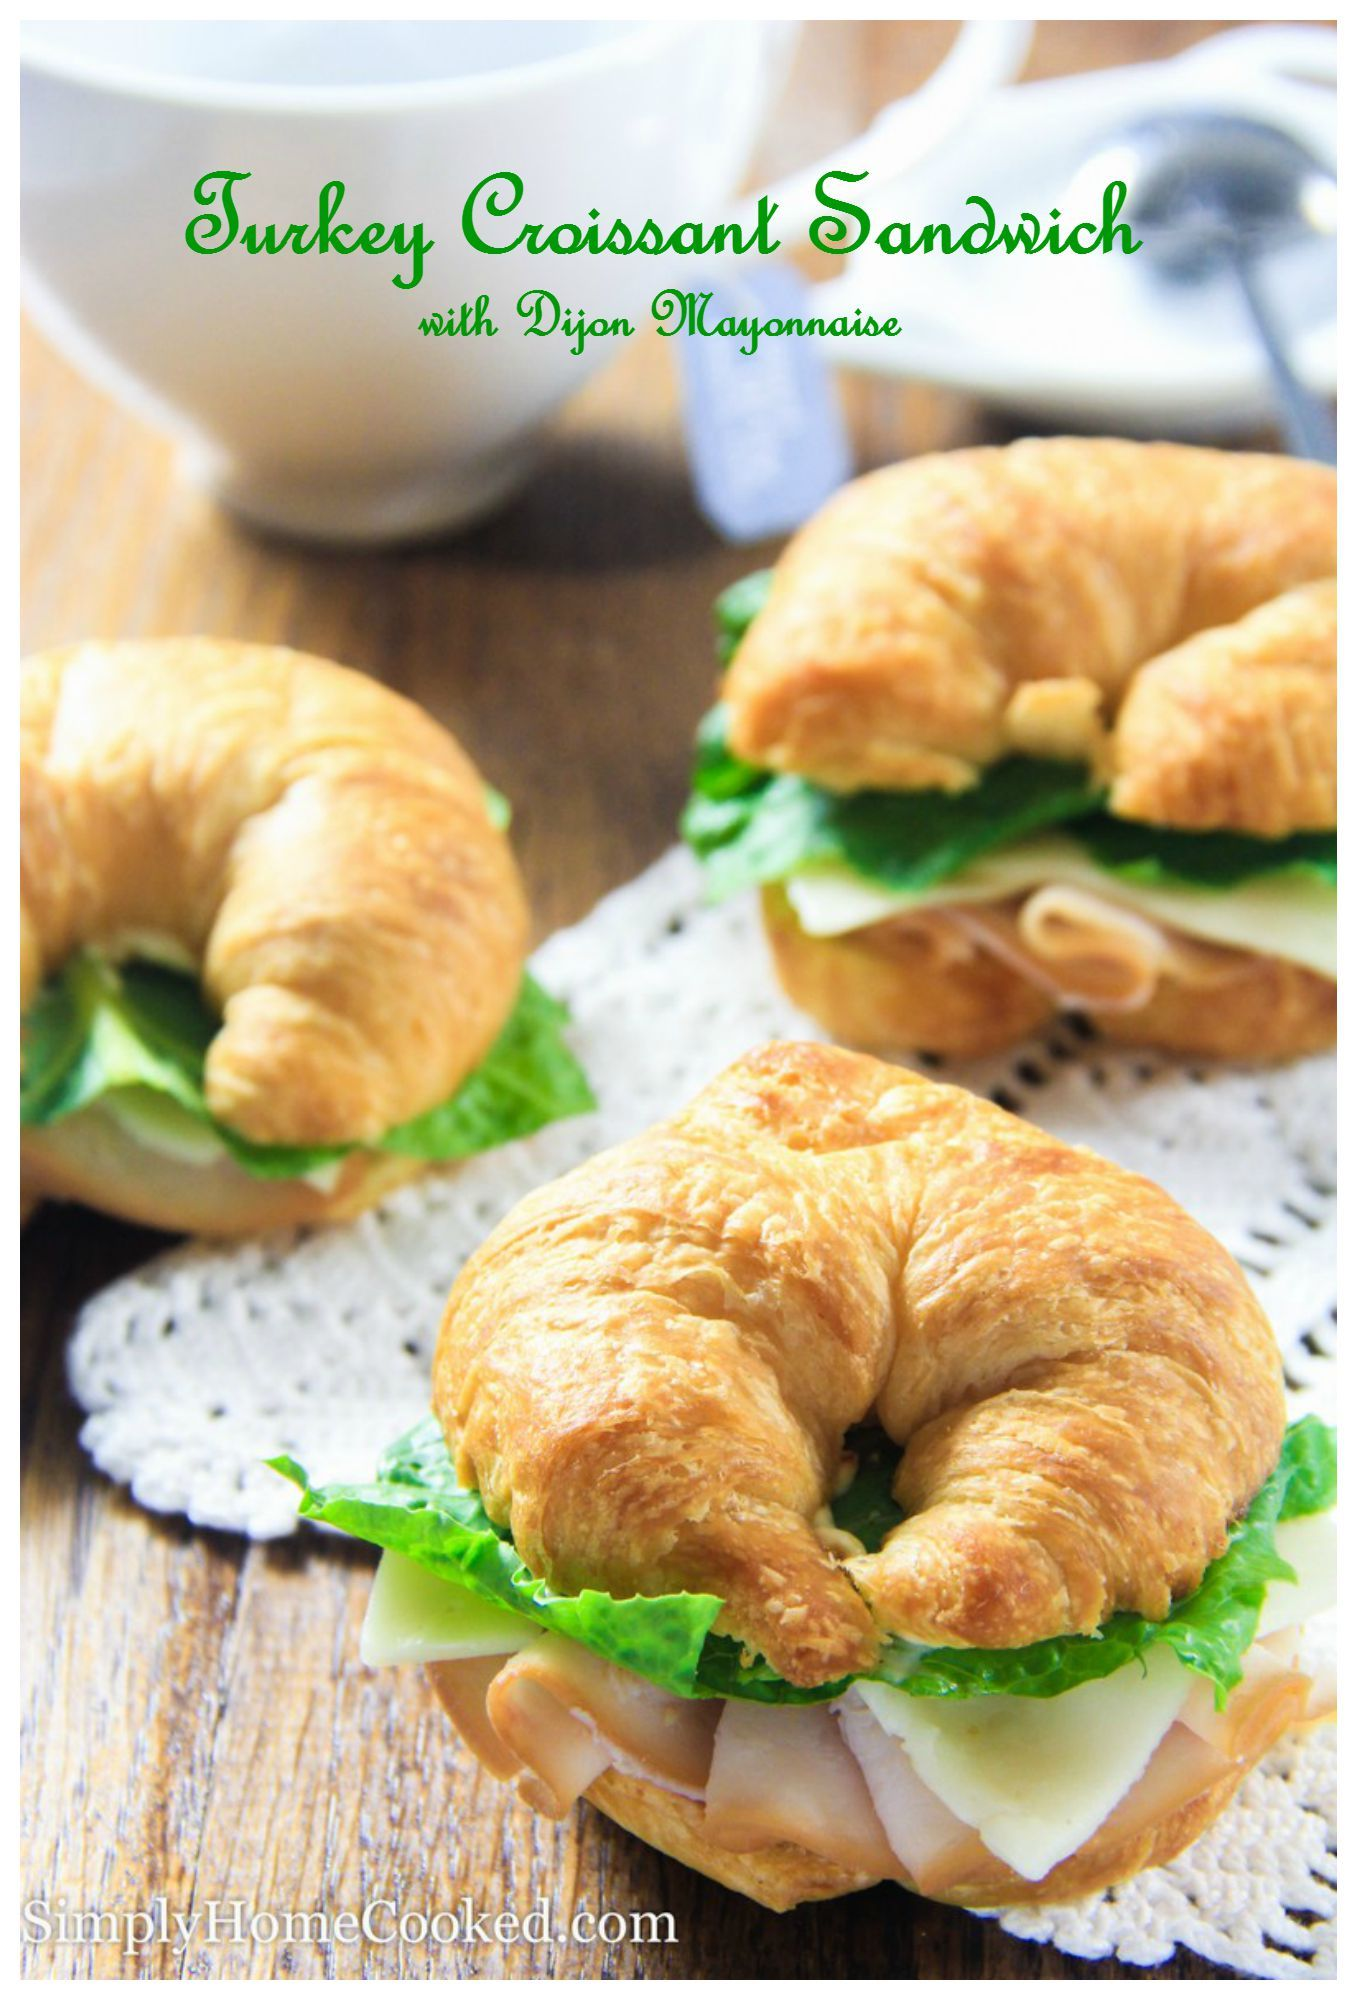 These turkey croissant sandwiches are the perfect finger food for tea parties or casual get togethers. With very basic ingredients, you might not even have to go to the grocery store for this recipe. Well that's if you always have croissants at home. Which we all do right? 😉 My favorite part about these sandwiches...Read More